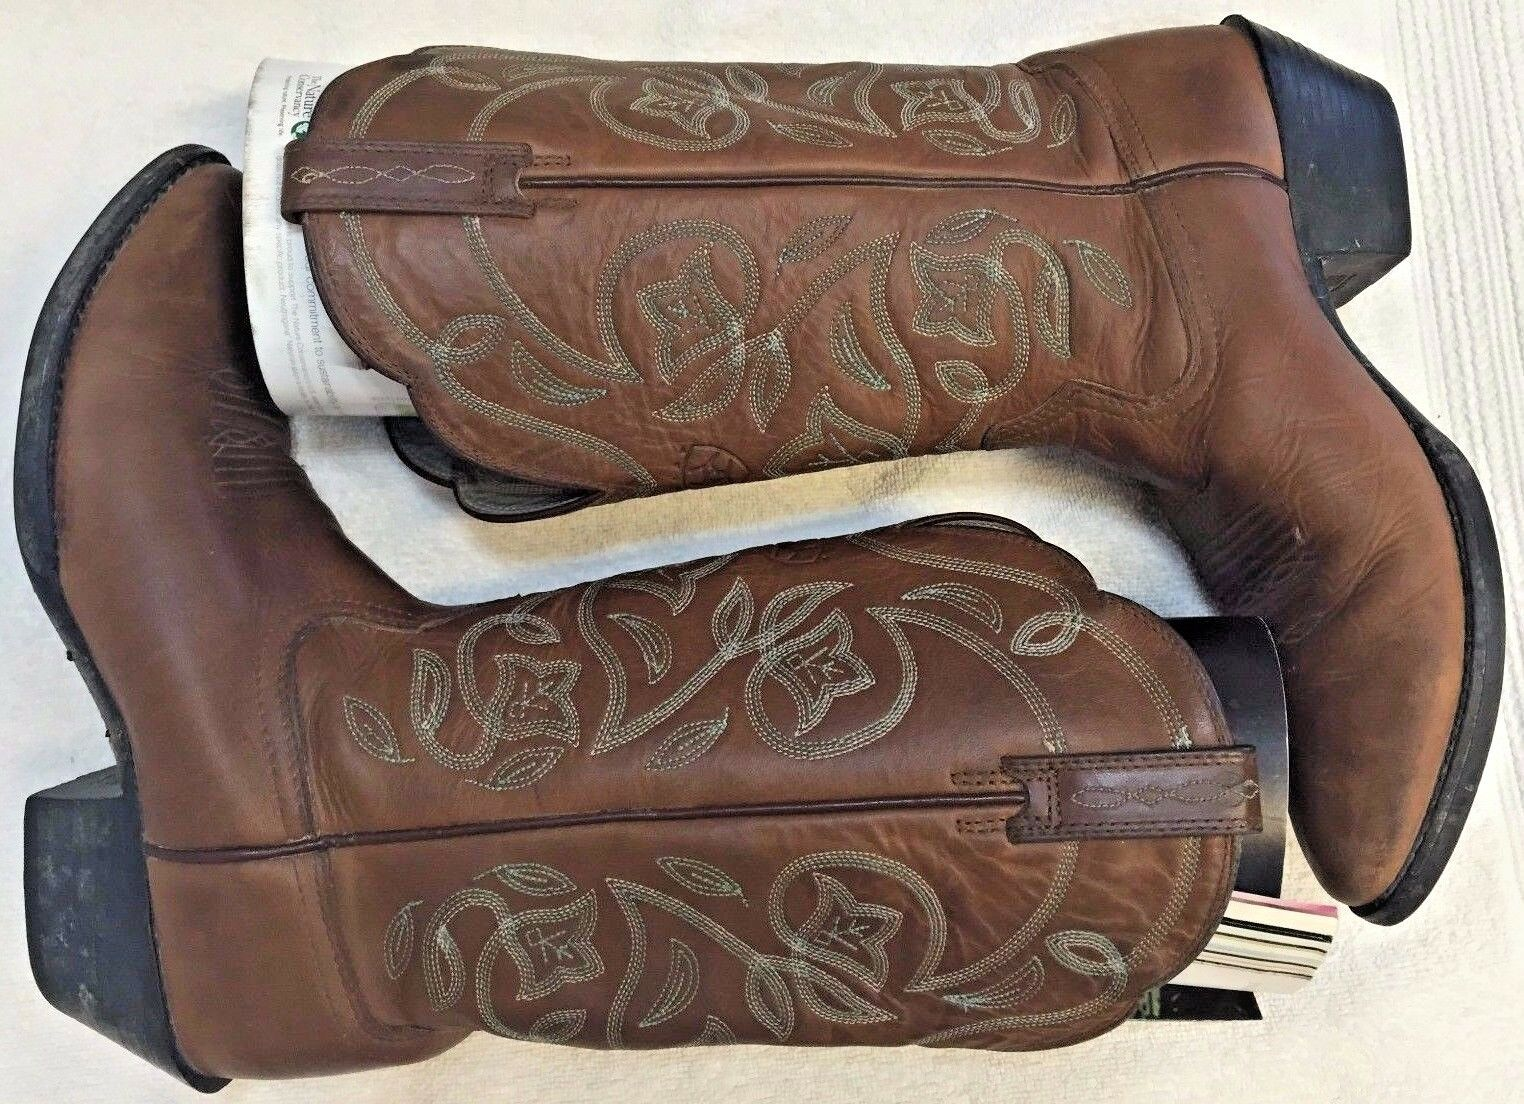 Ariat Western Cowboy Boots Donna 7B Brown Leather Horse Riding Blue Embroidered